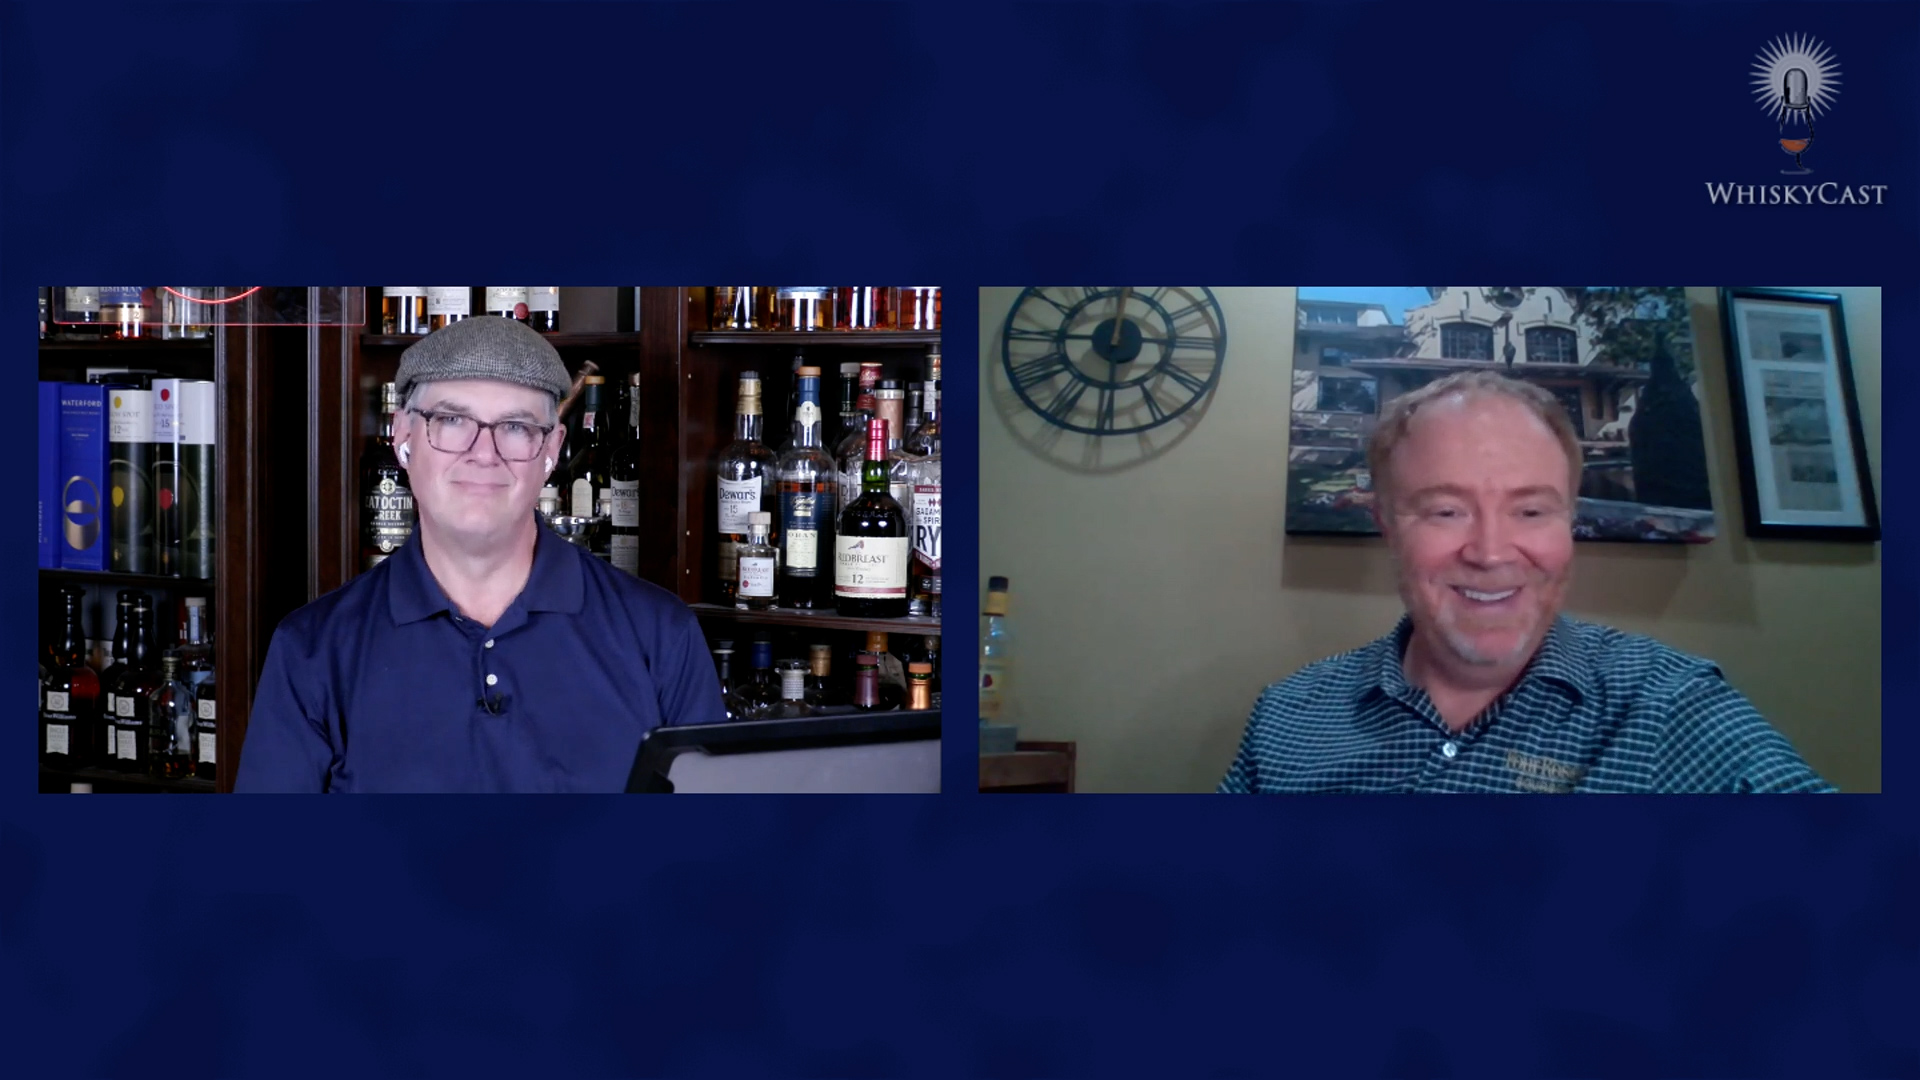 Four Roses master distiller Brent Elliott joined us on this week's #HappyHourLive webcast! If you missed the webcast, the on-demand replay is available on the WhiskyCast YouTube channel.